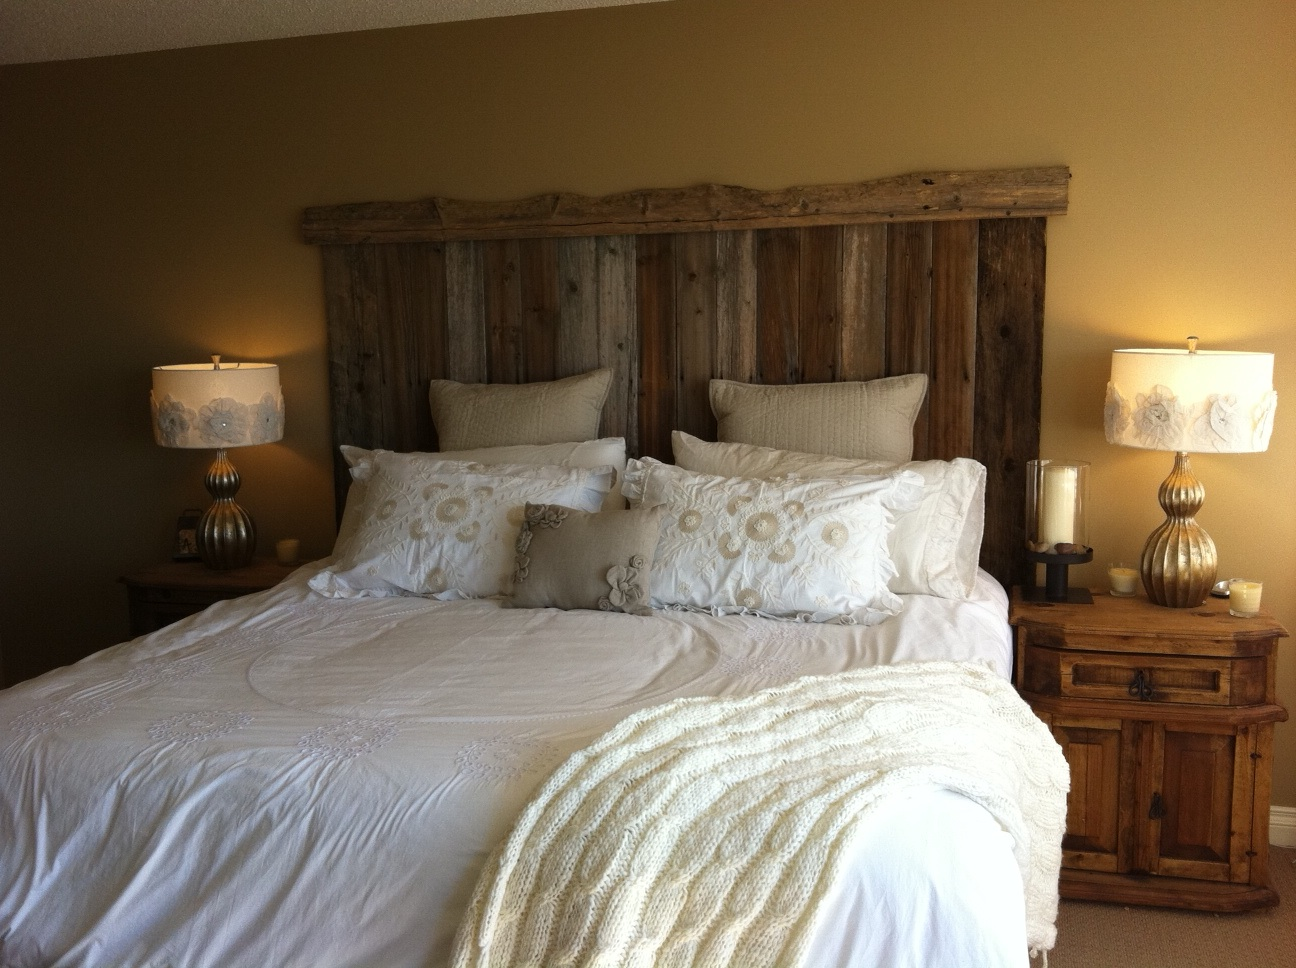 Barn Board Headboard Twobertis Interiors Inside Ideas Interiors design about Everything [magnanprojects.com]